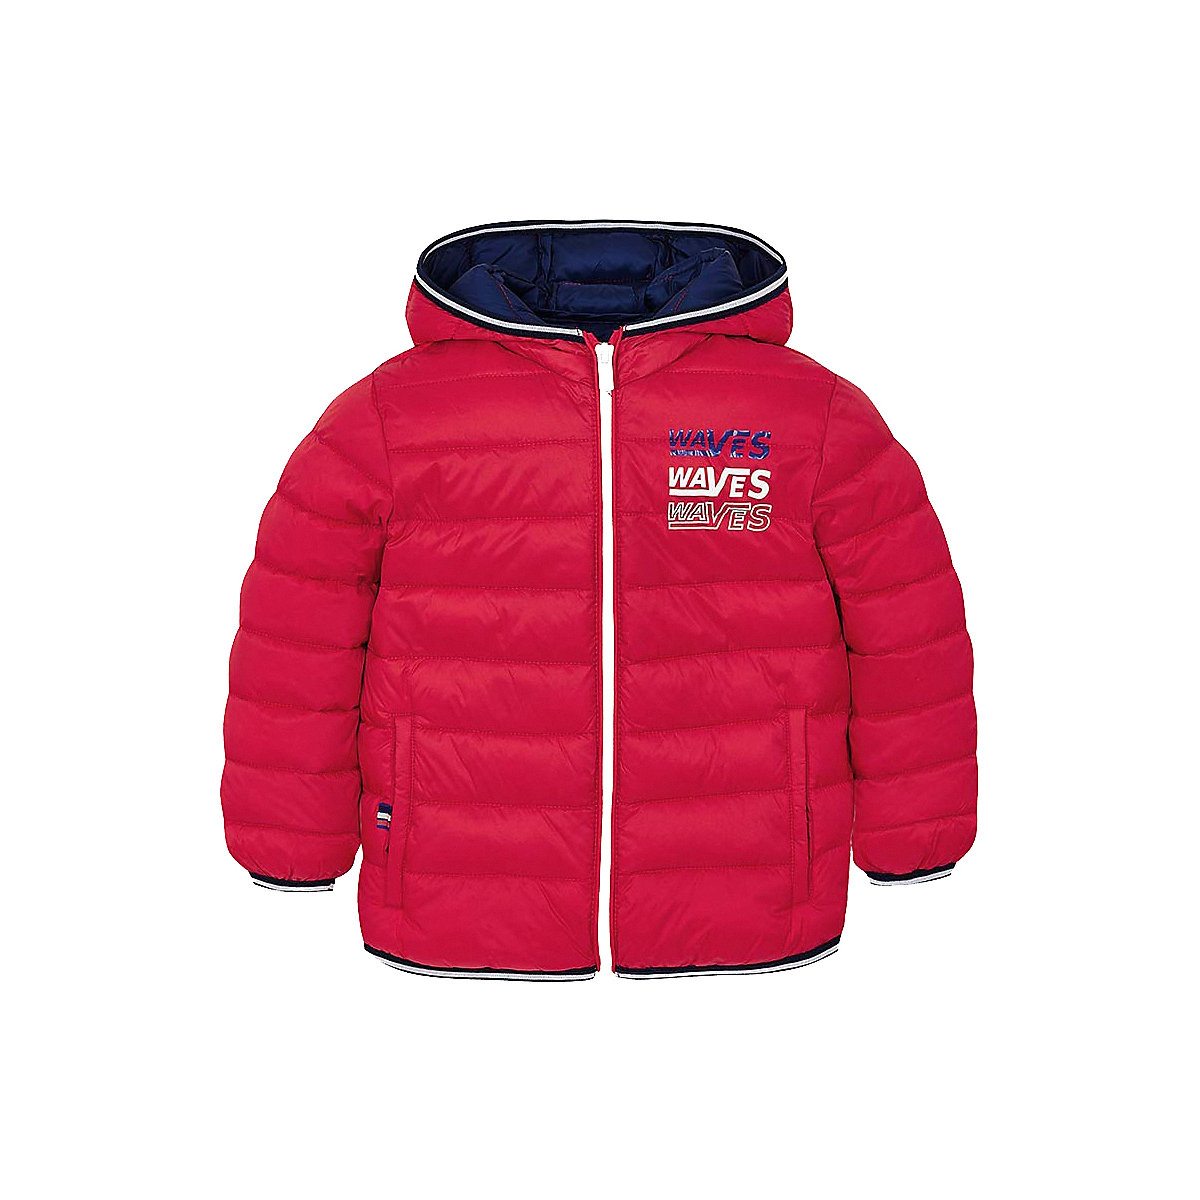 Фото - Mayoral Jackets & Coats 10685278 jacket for boys coat baby clothes children clothing outwear boy reima jackets 8688821 for boys polyester winter fur clothes boy